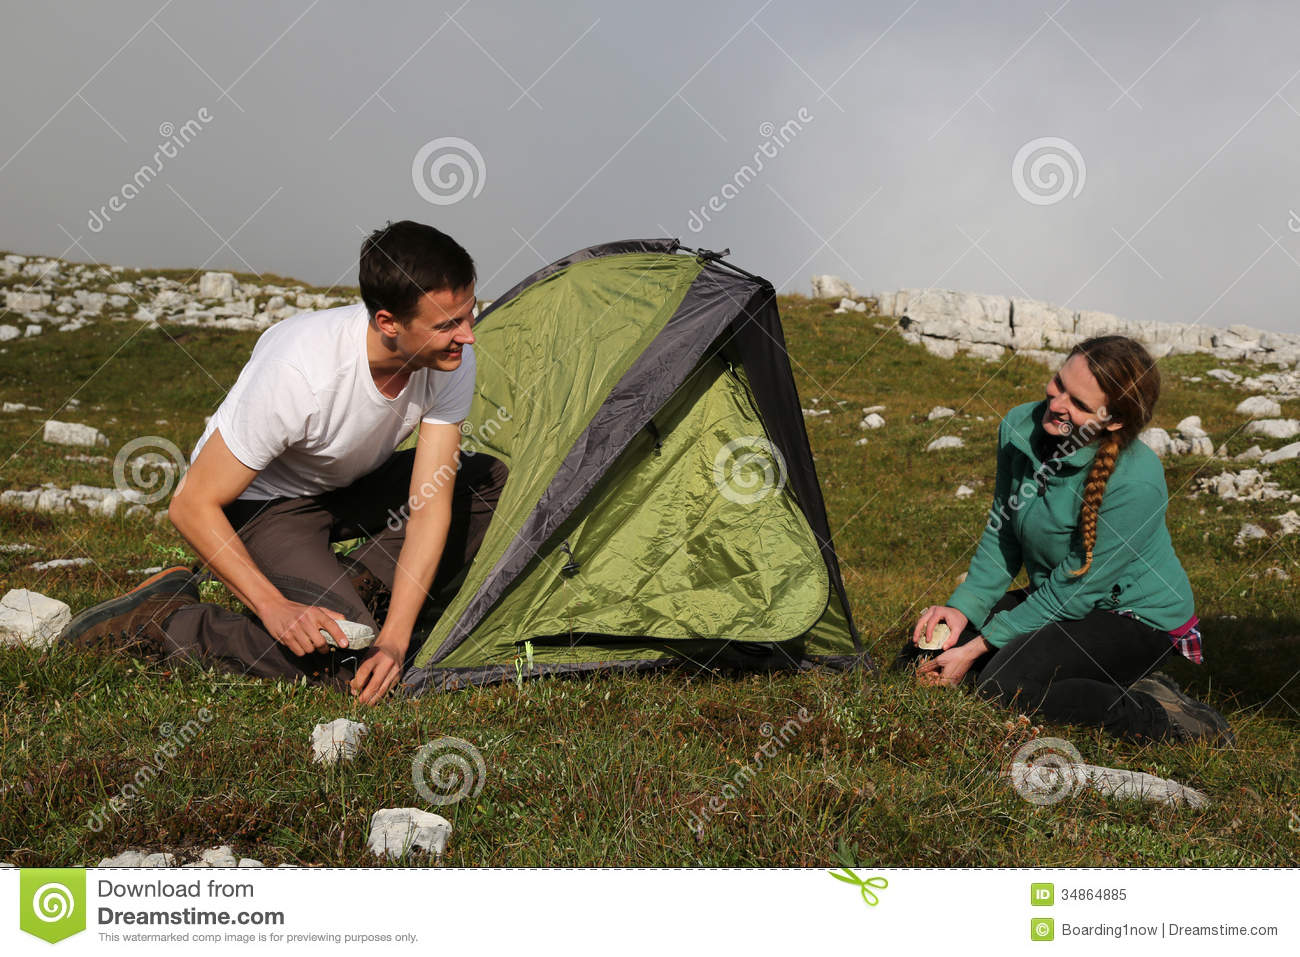 Young people building up a tent in the mountains Royalty Free Stock Photo & The tent building stock image. Image of exterior city - 1397747